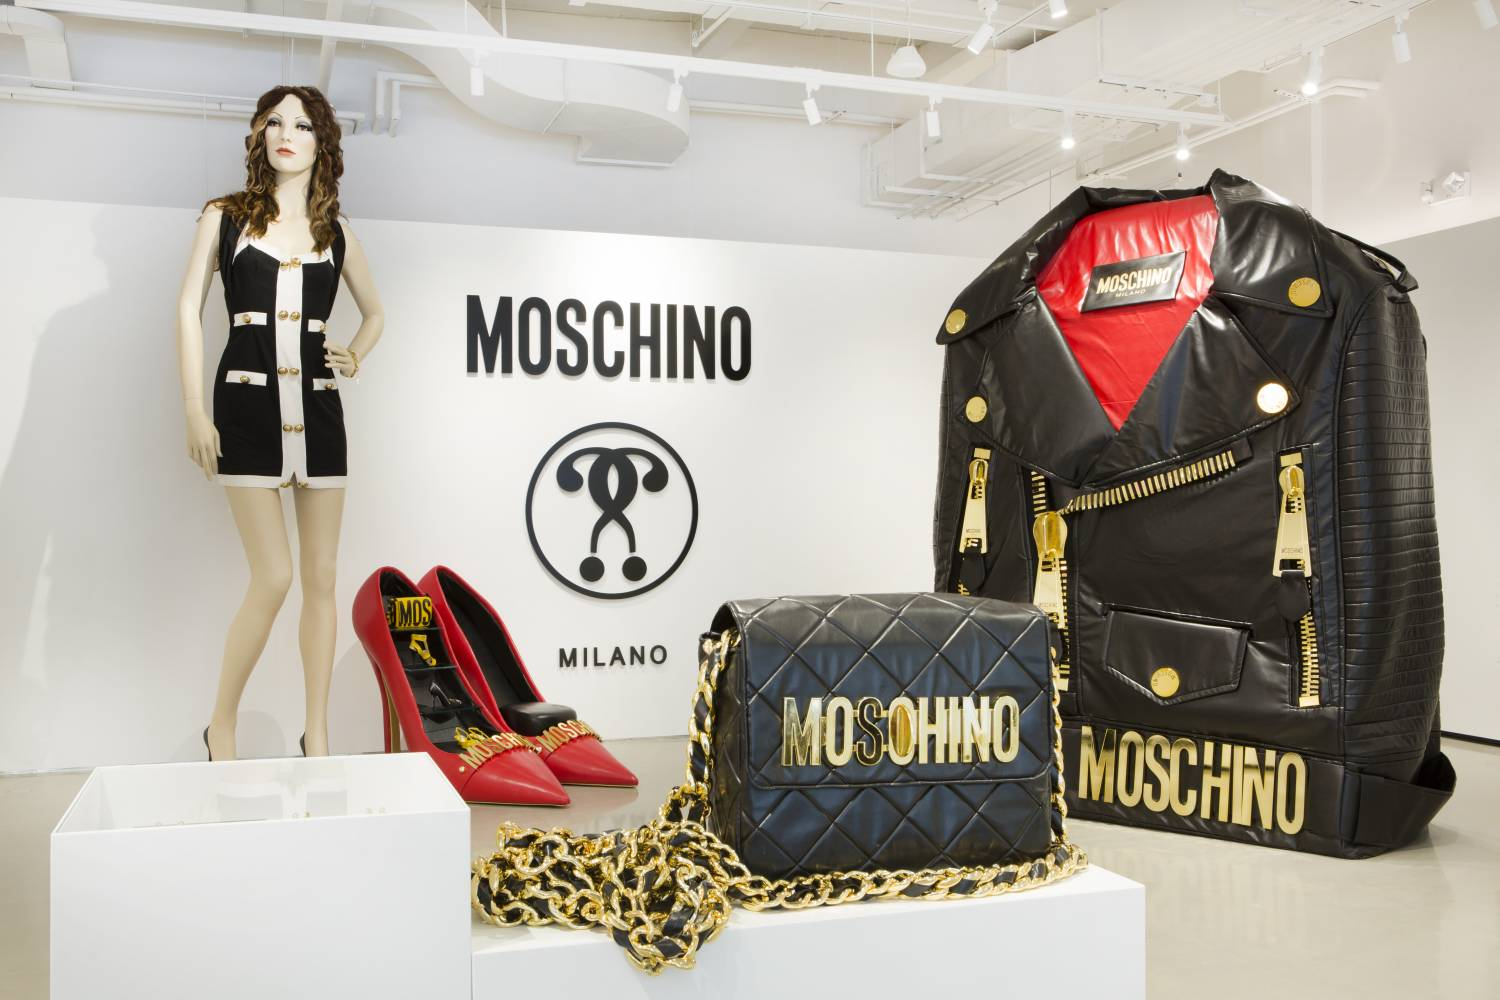 Moschino, close